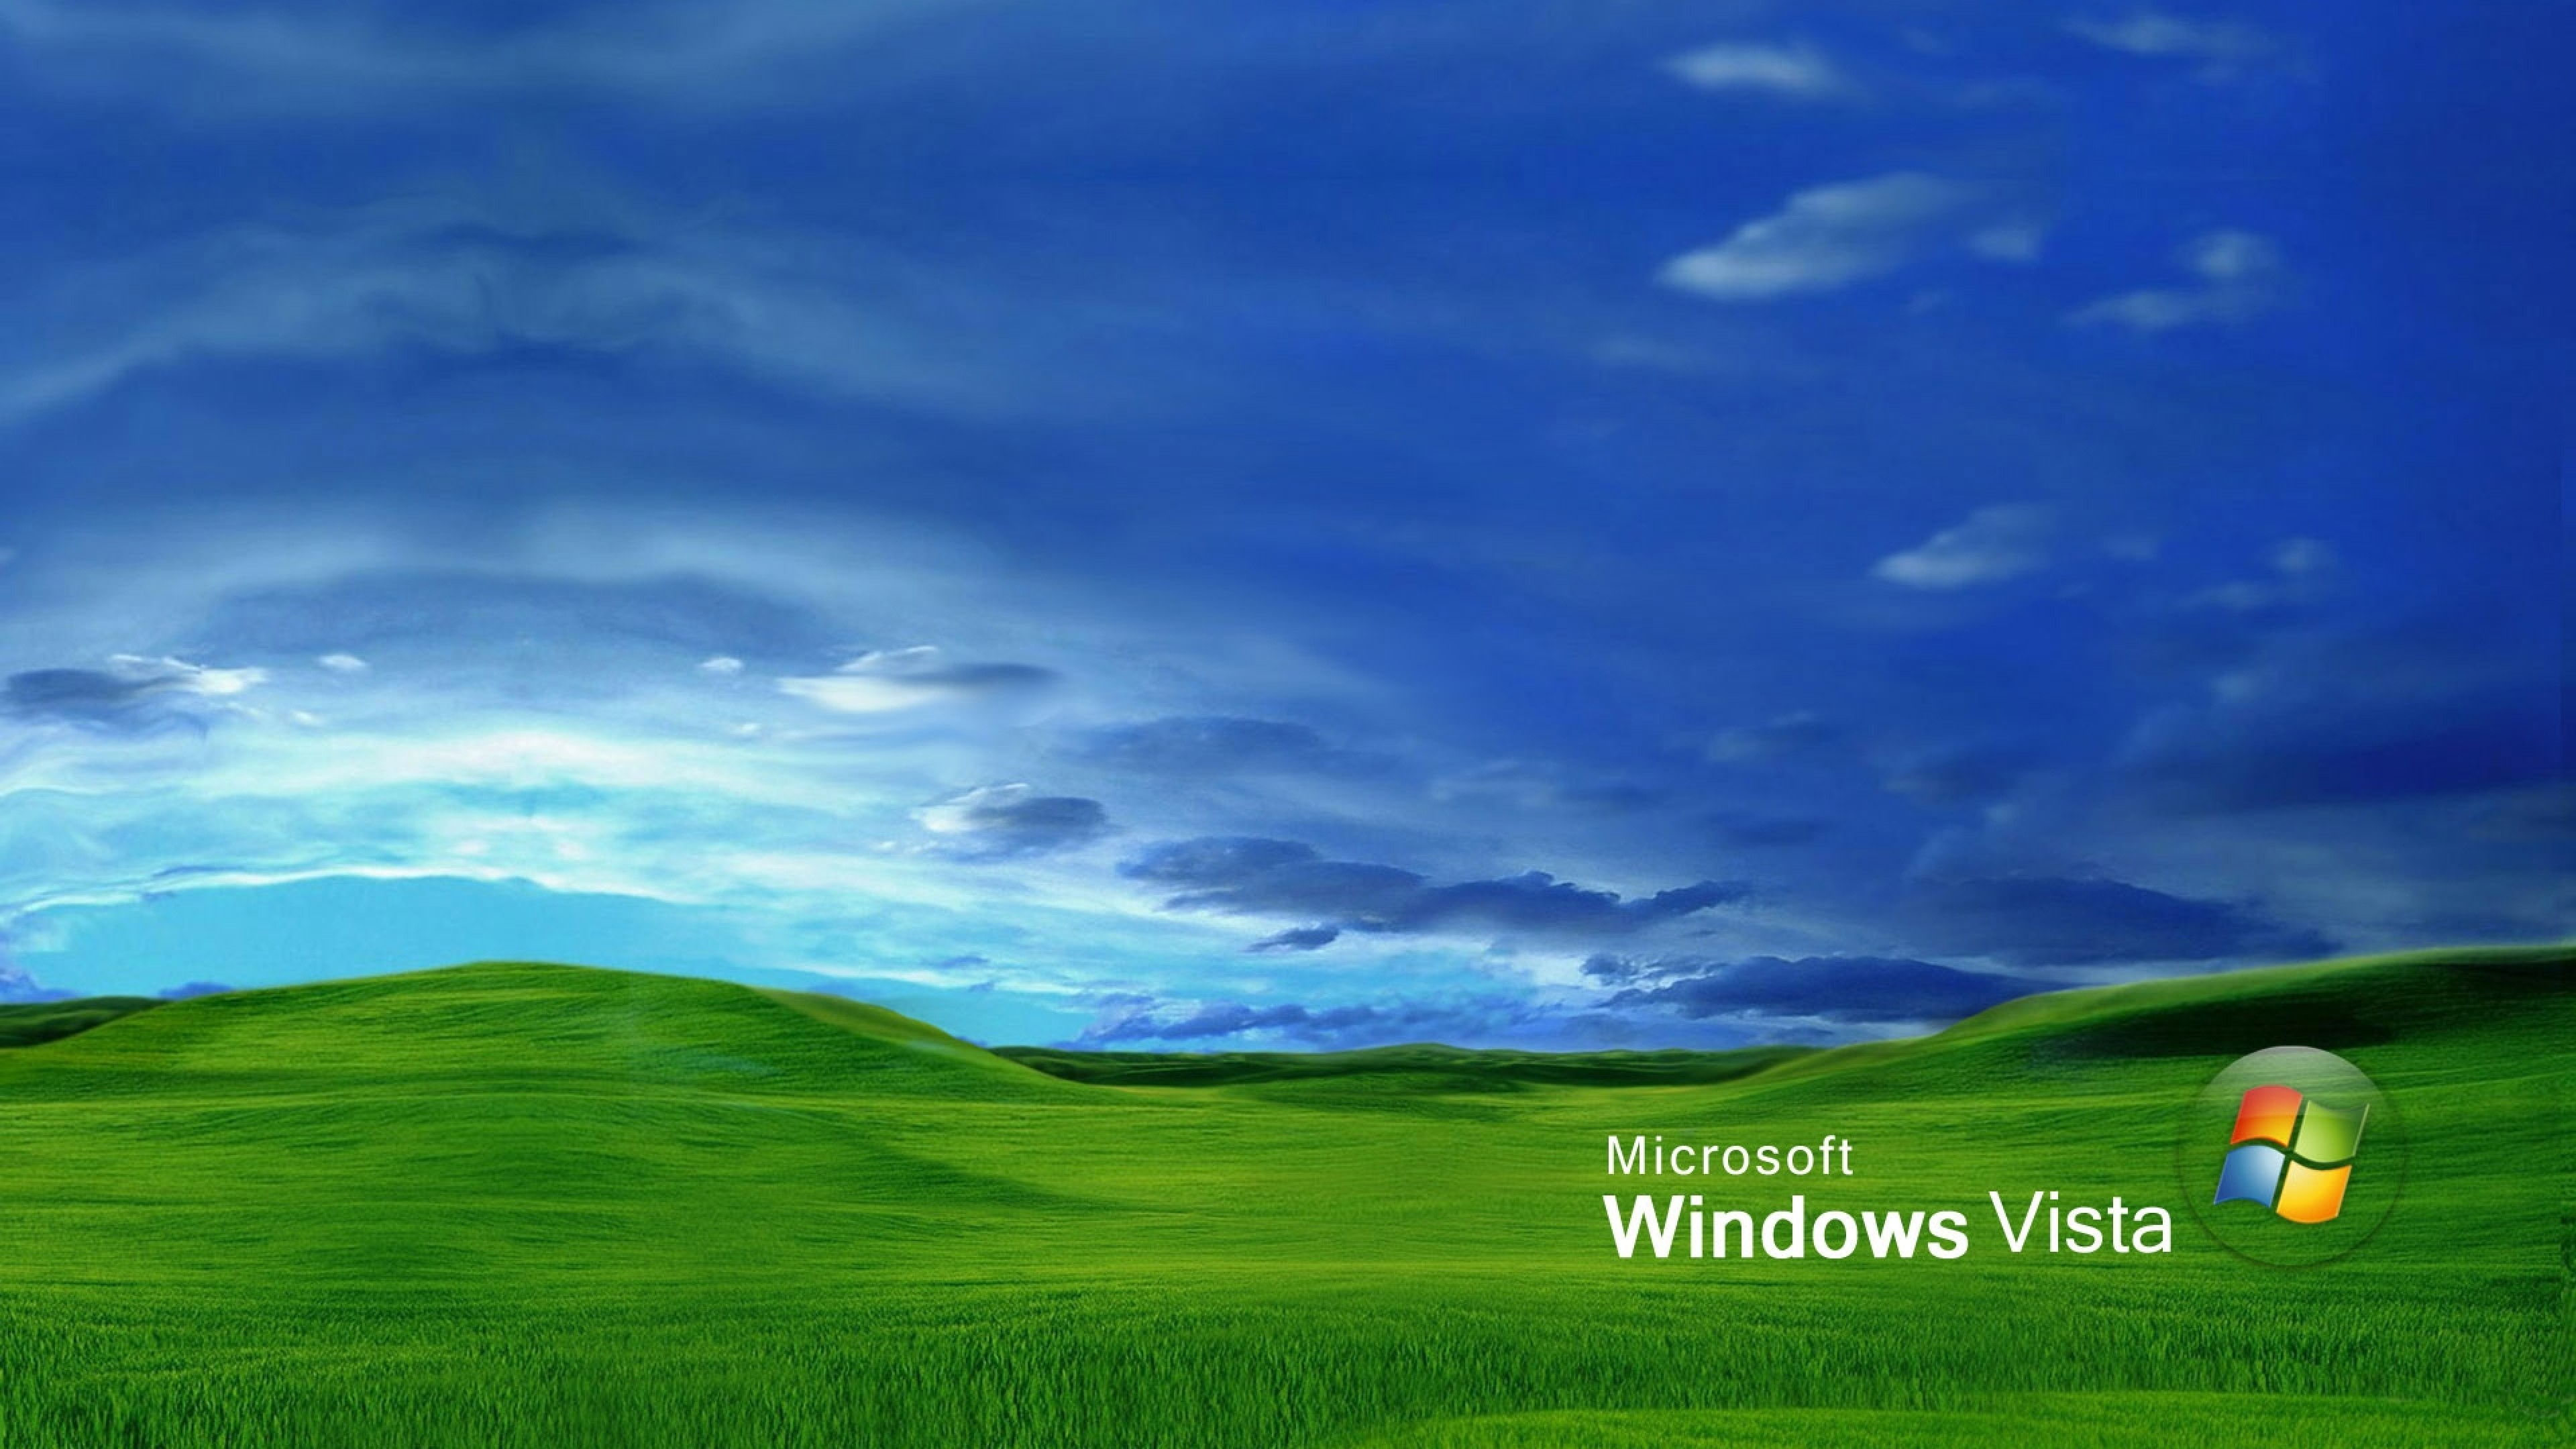 3840x2160 Windows Vista HD Wallpaper